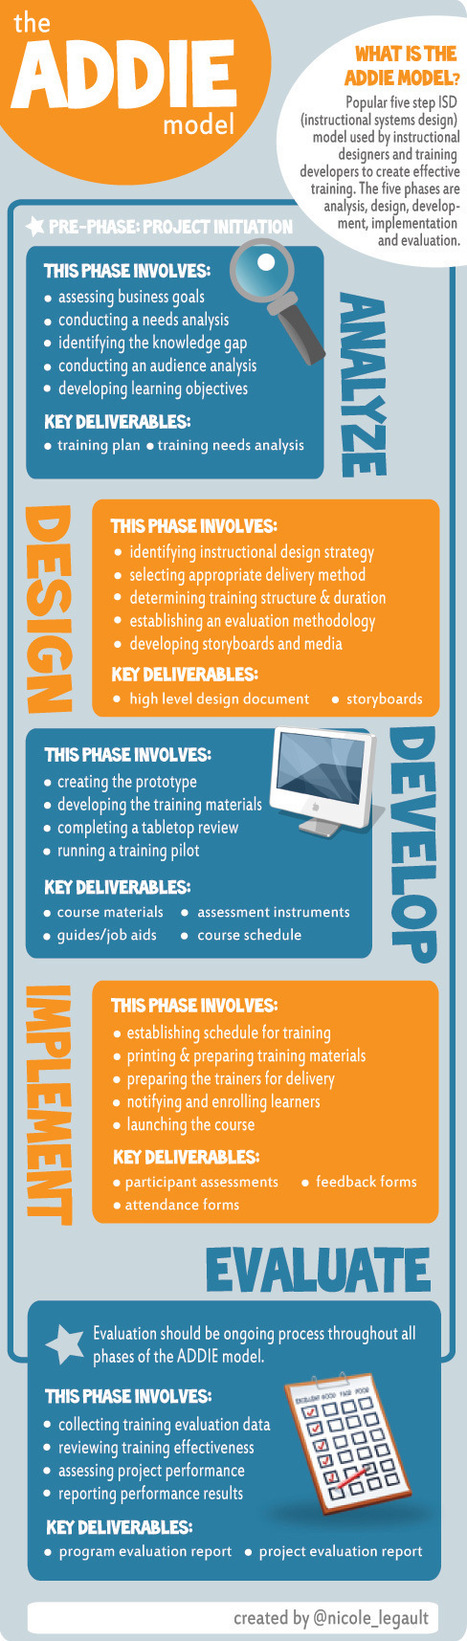 The ADDIE Instructional Design Model Infographic - e-Learning Infographics | Desenho Instrucional | Scoop.it